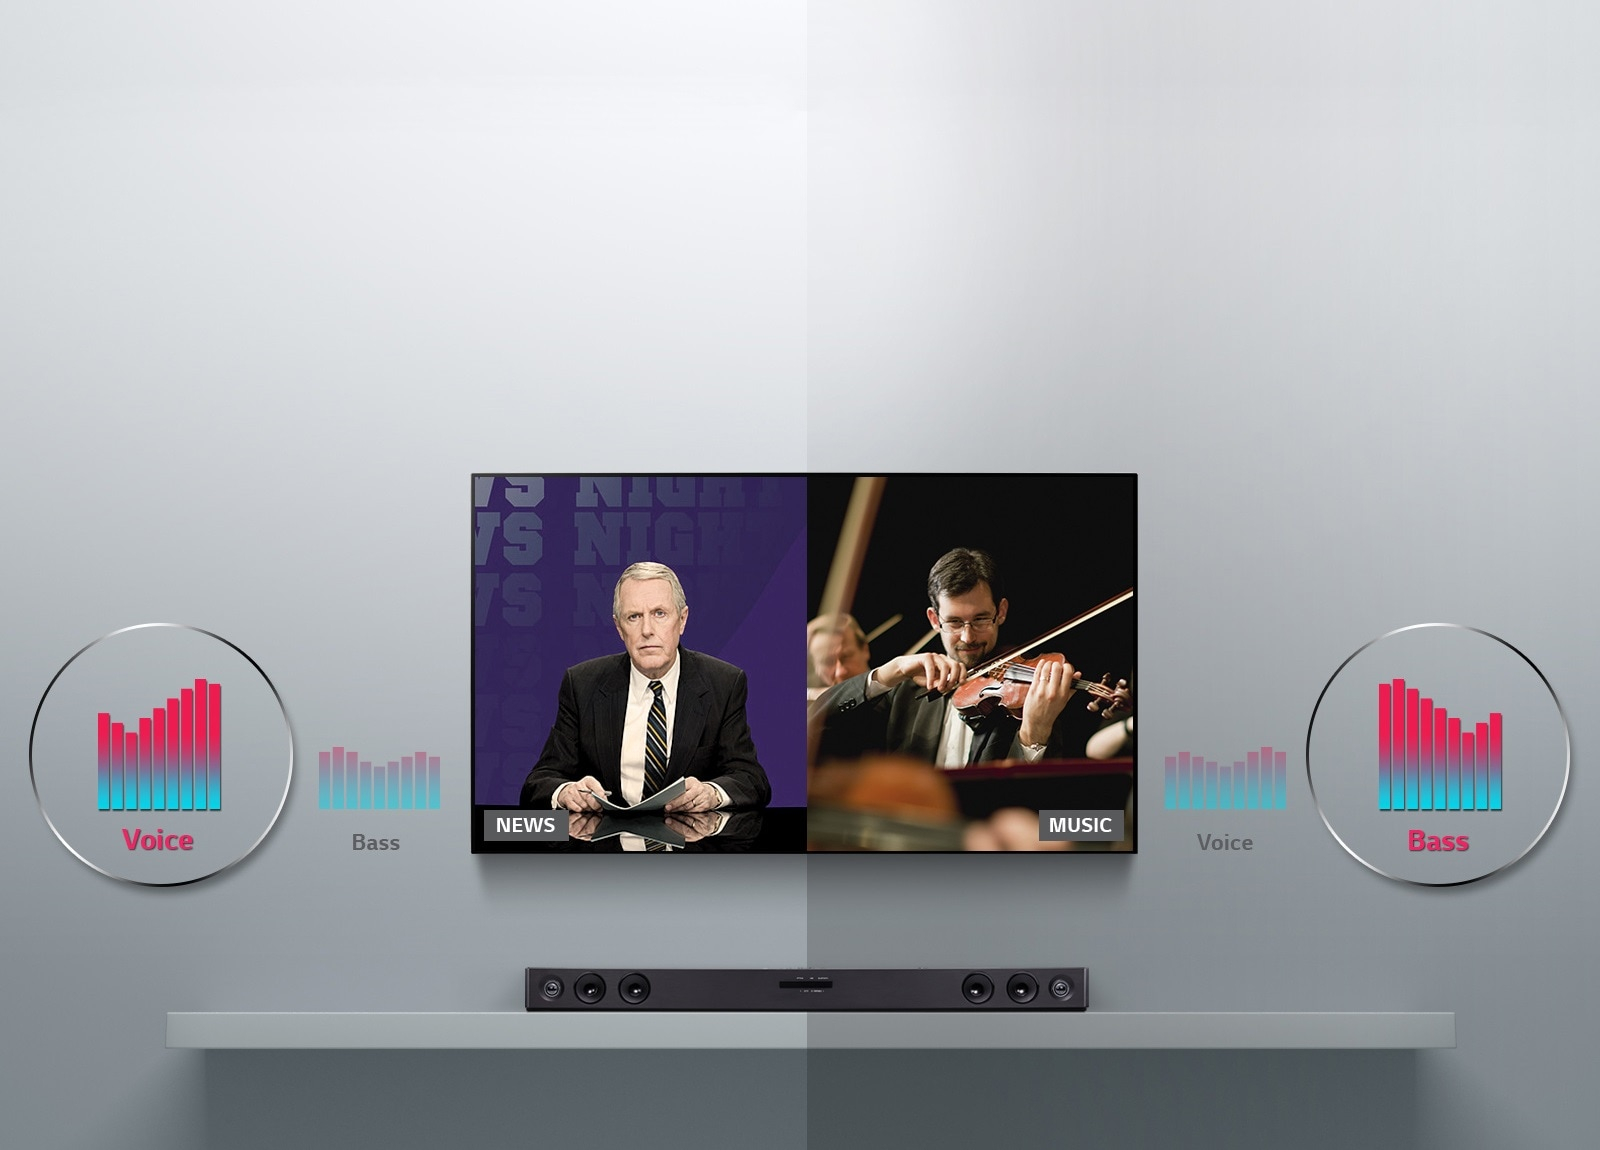 Adaptive Audio for what you Watch